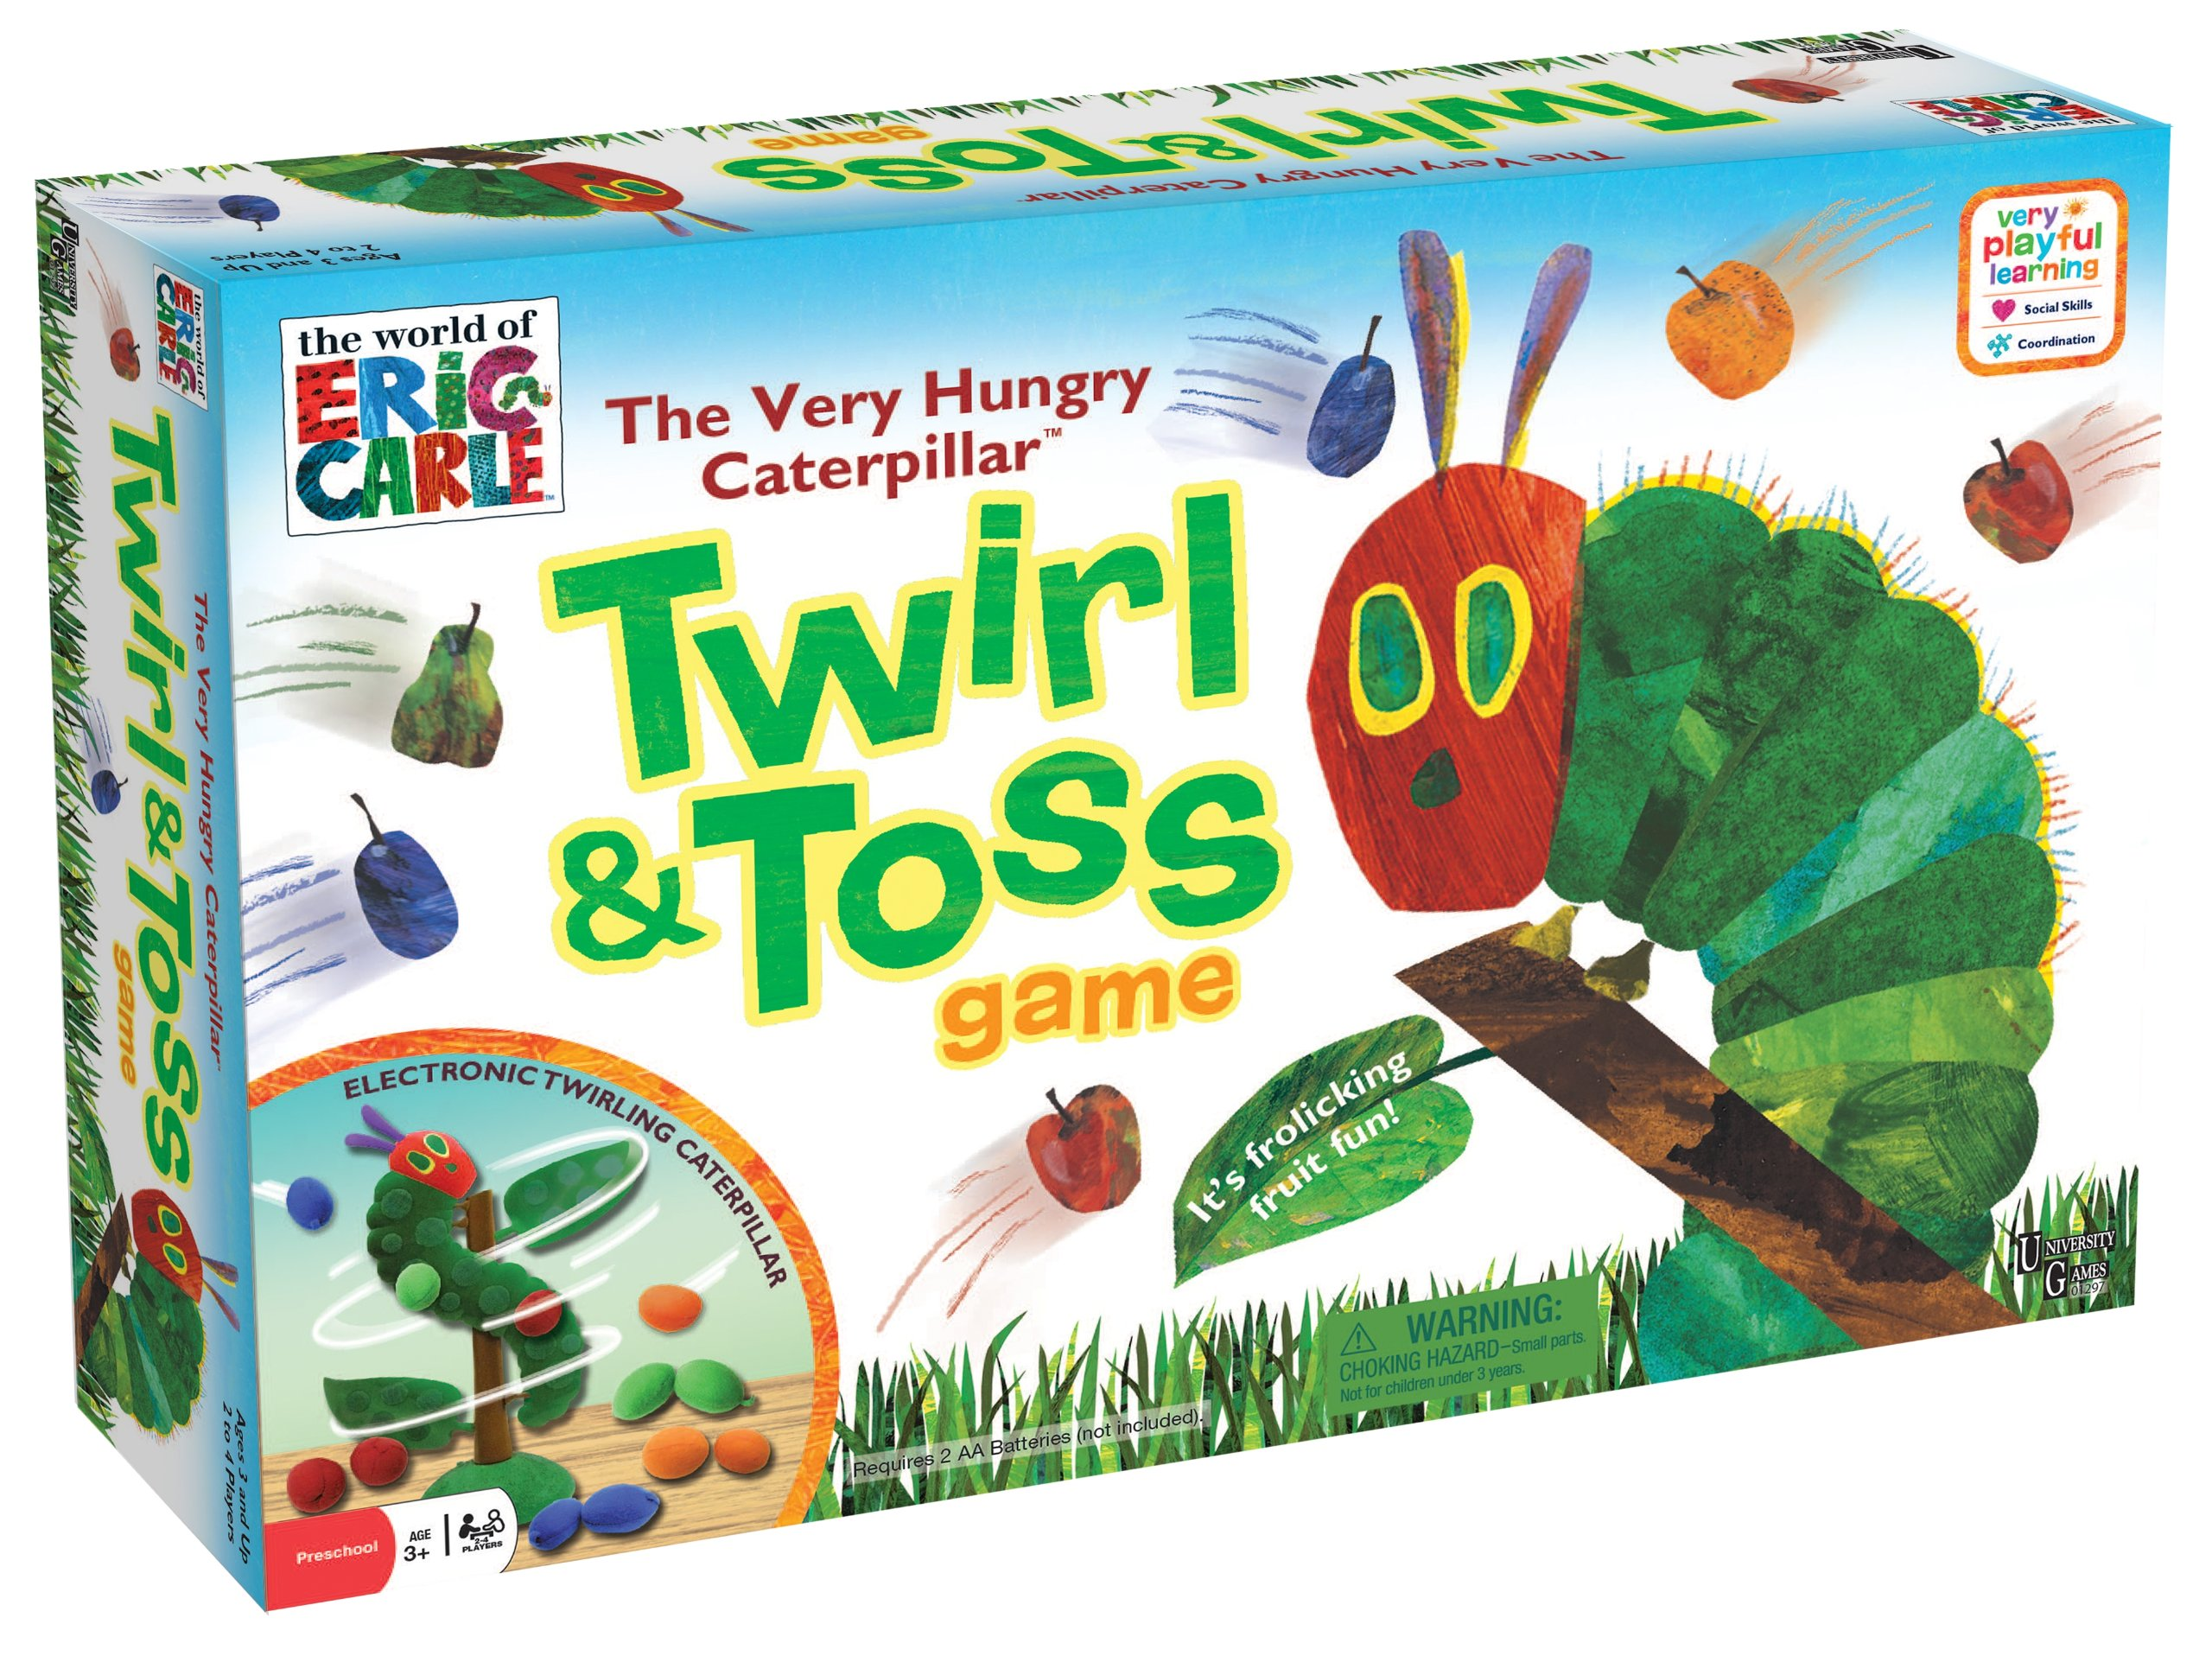 The World of Eric Carle Very Hungry Caterpillar Twirl & Toss Game